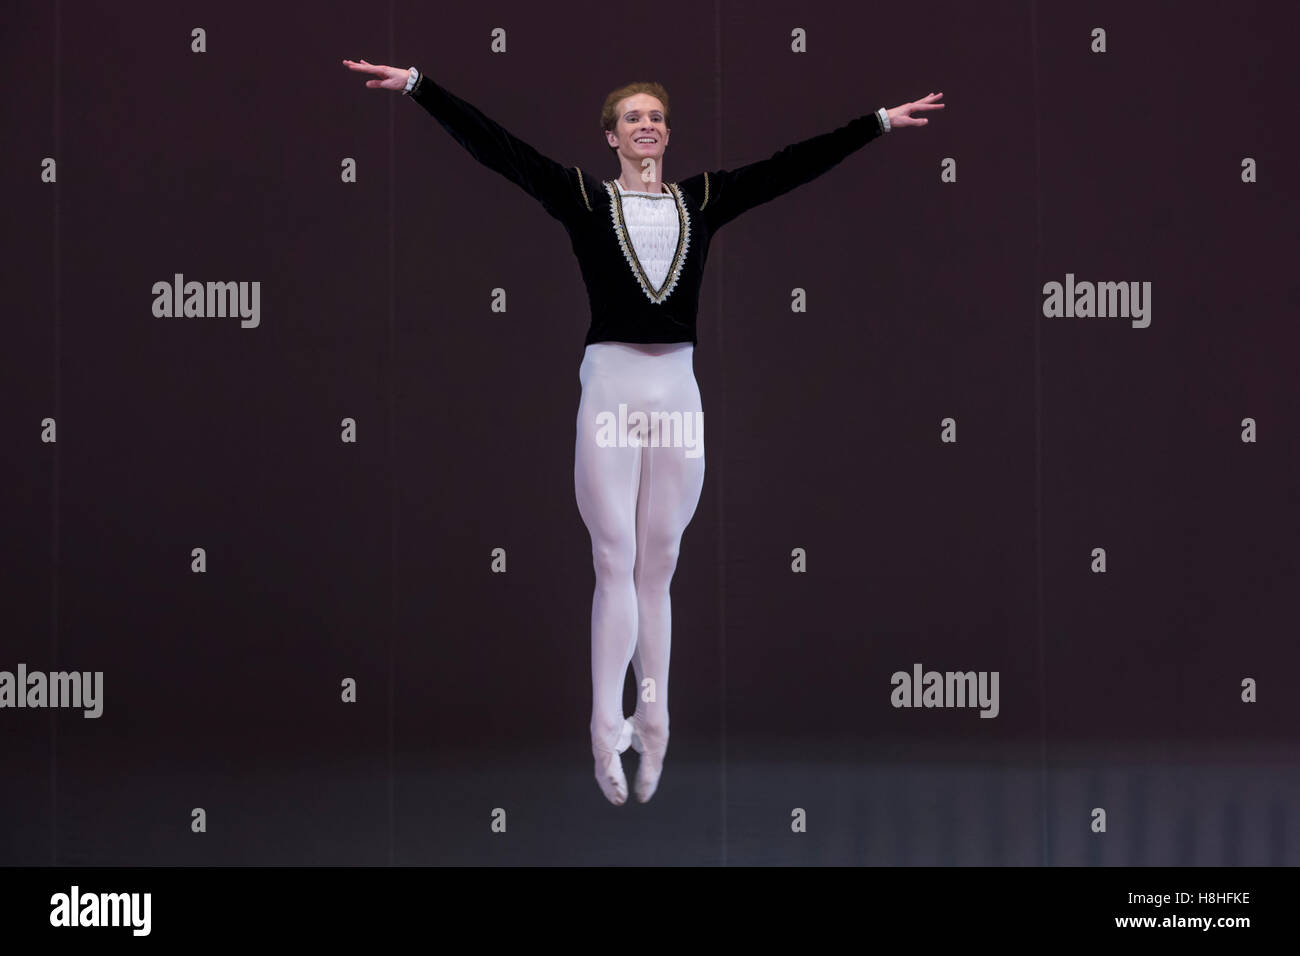 Ballet dancer Ivan Titov Ballet performs at the stage in Moscow theater, Russia - Stock Image